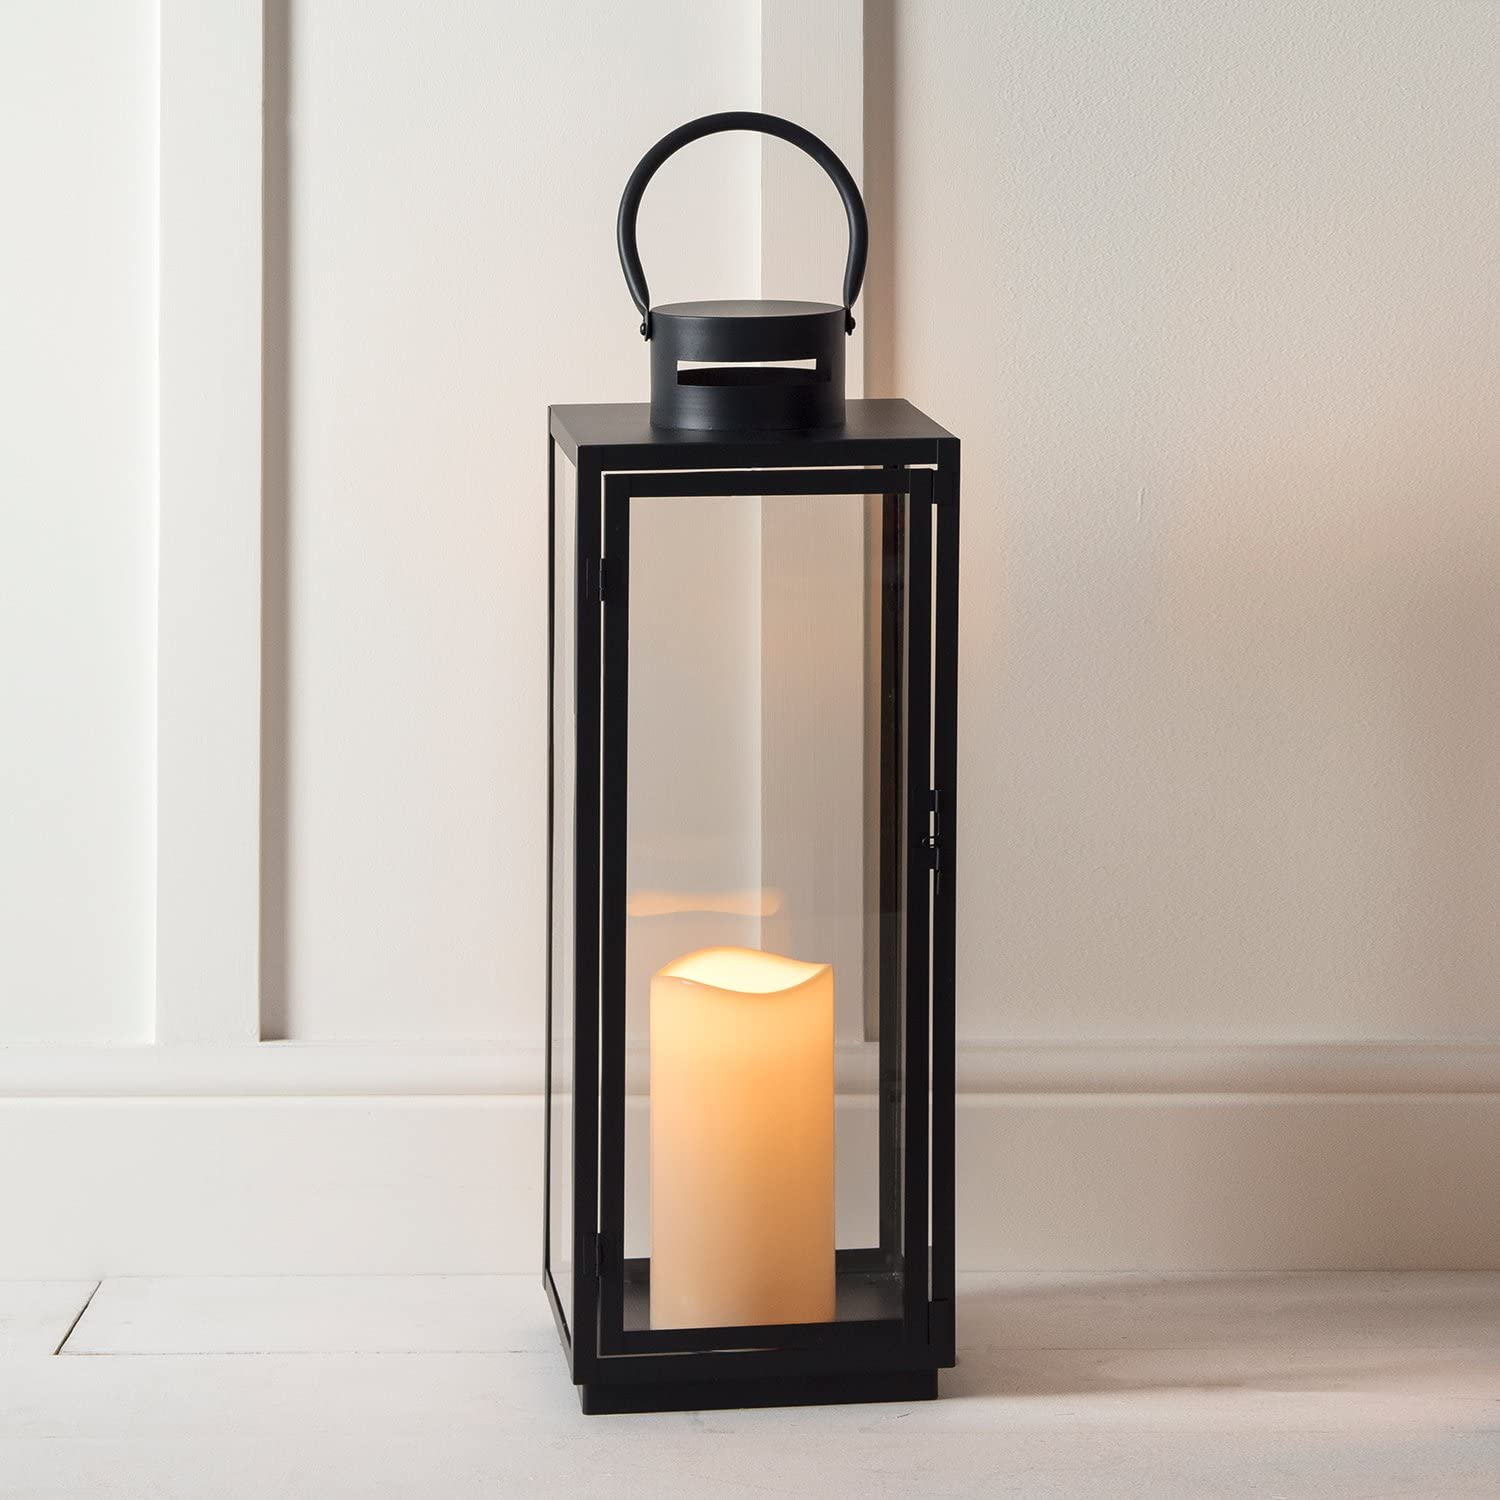 Lights4fun Large Candle Lantern Tall Black Metal Outdoor Battery Operated Led With Timer 65cm Amazon Co Uk Kitchen Home